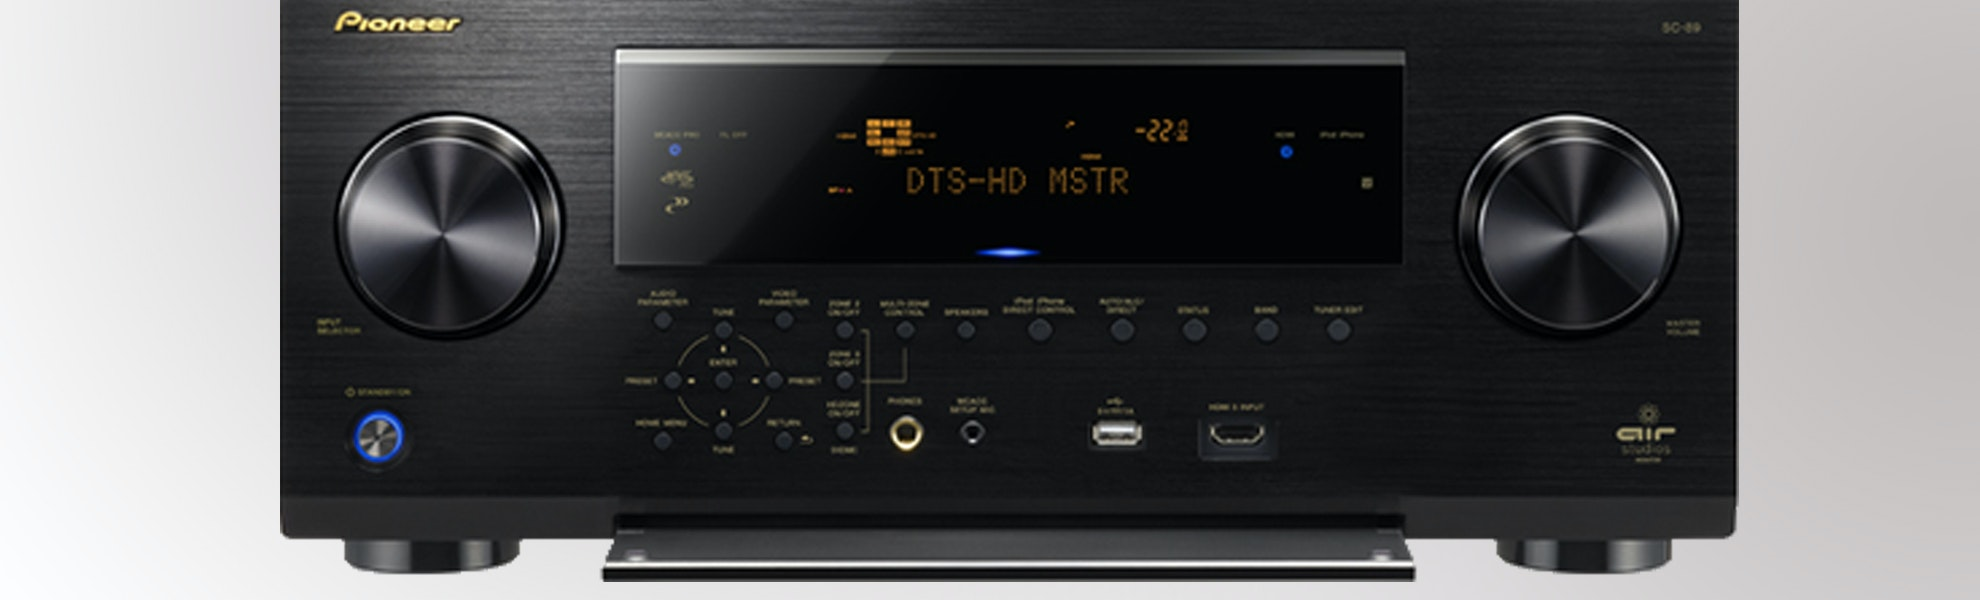 Pioneer Elite SC-89 9.2-Channel A/V Receiver